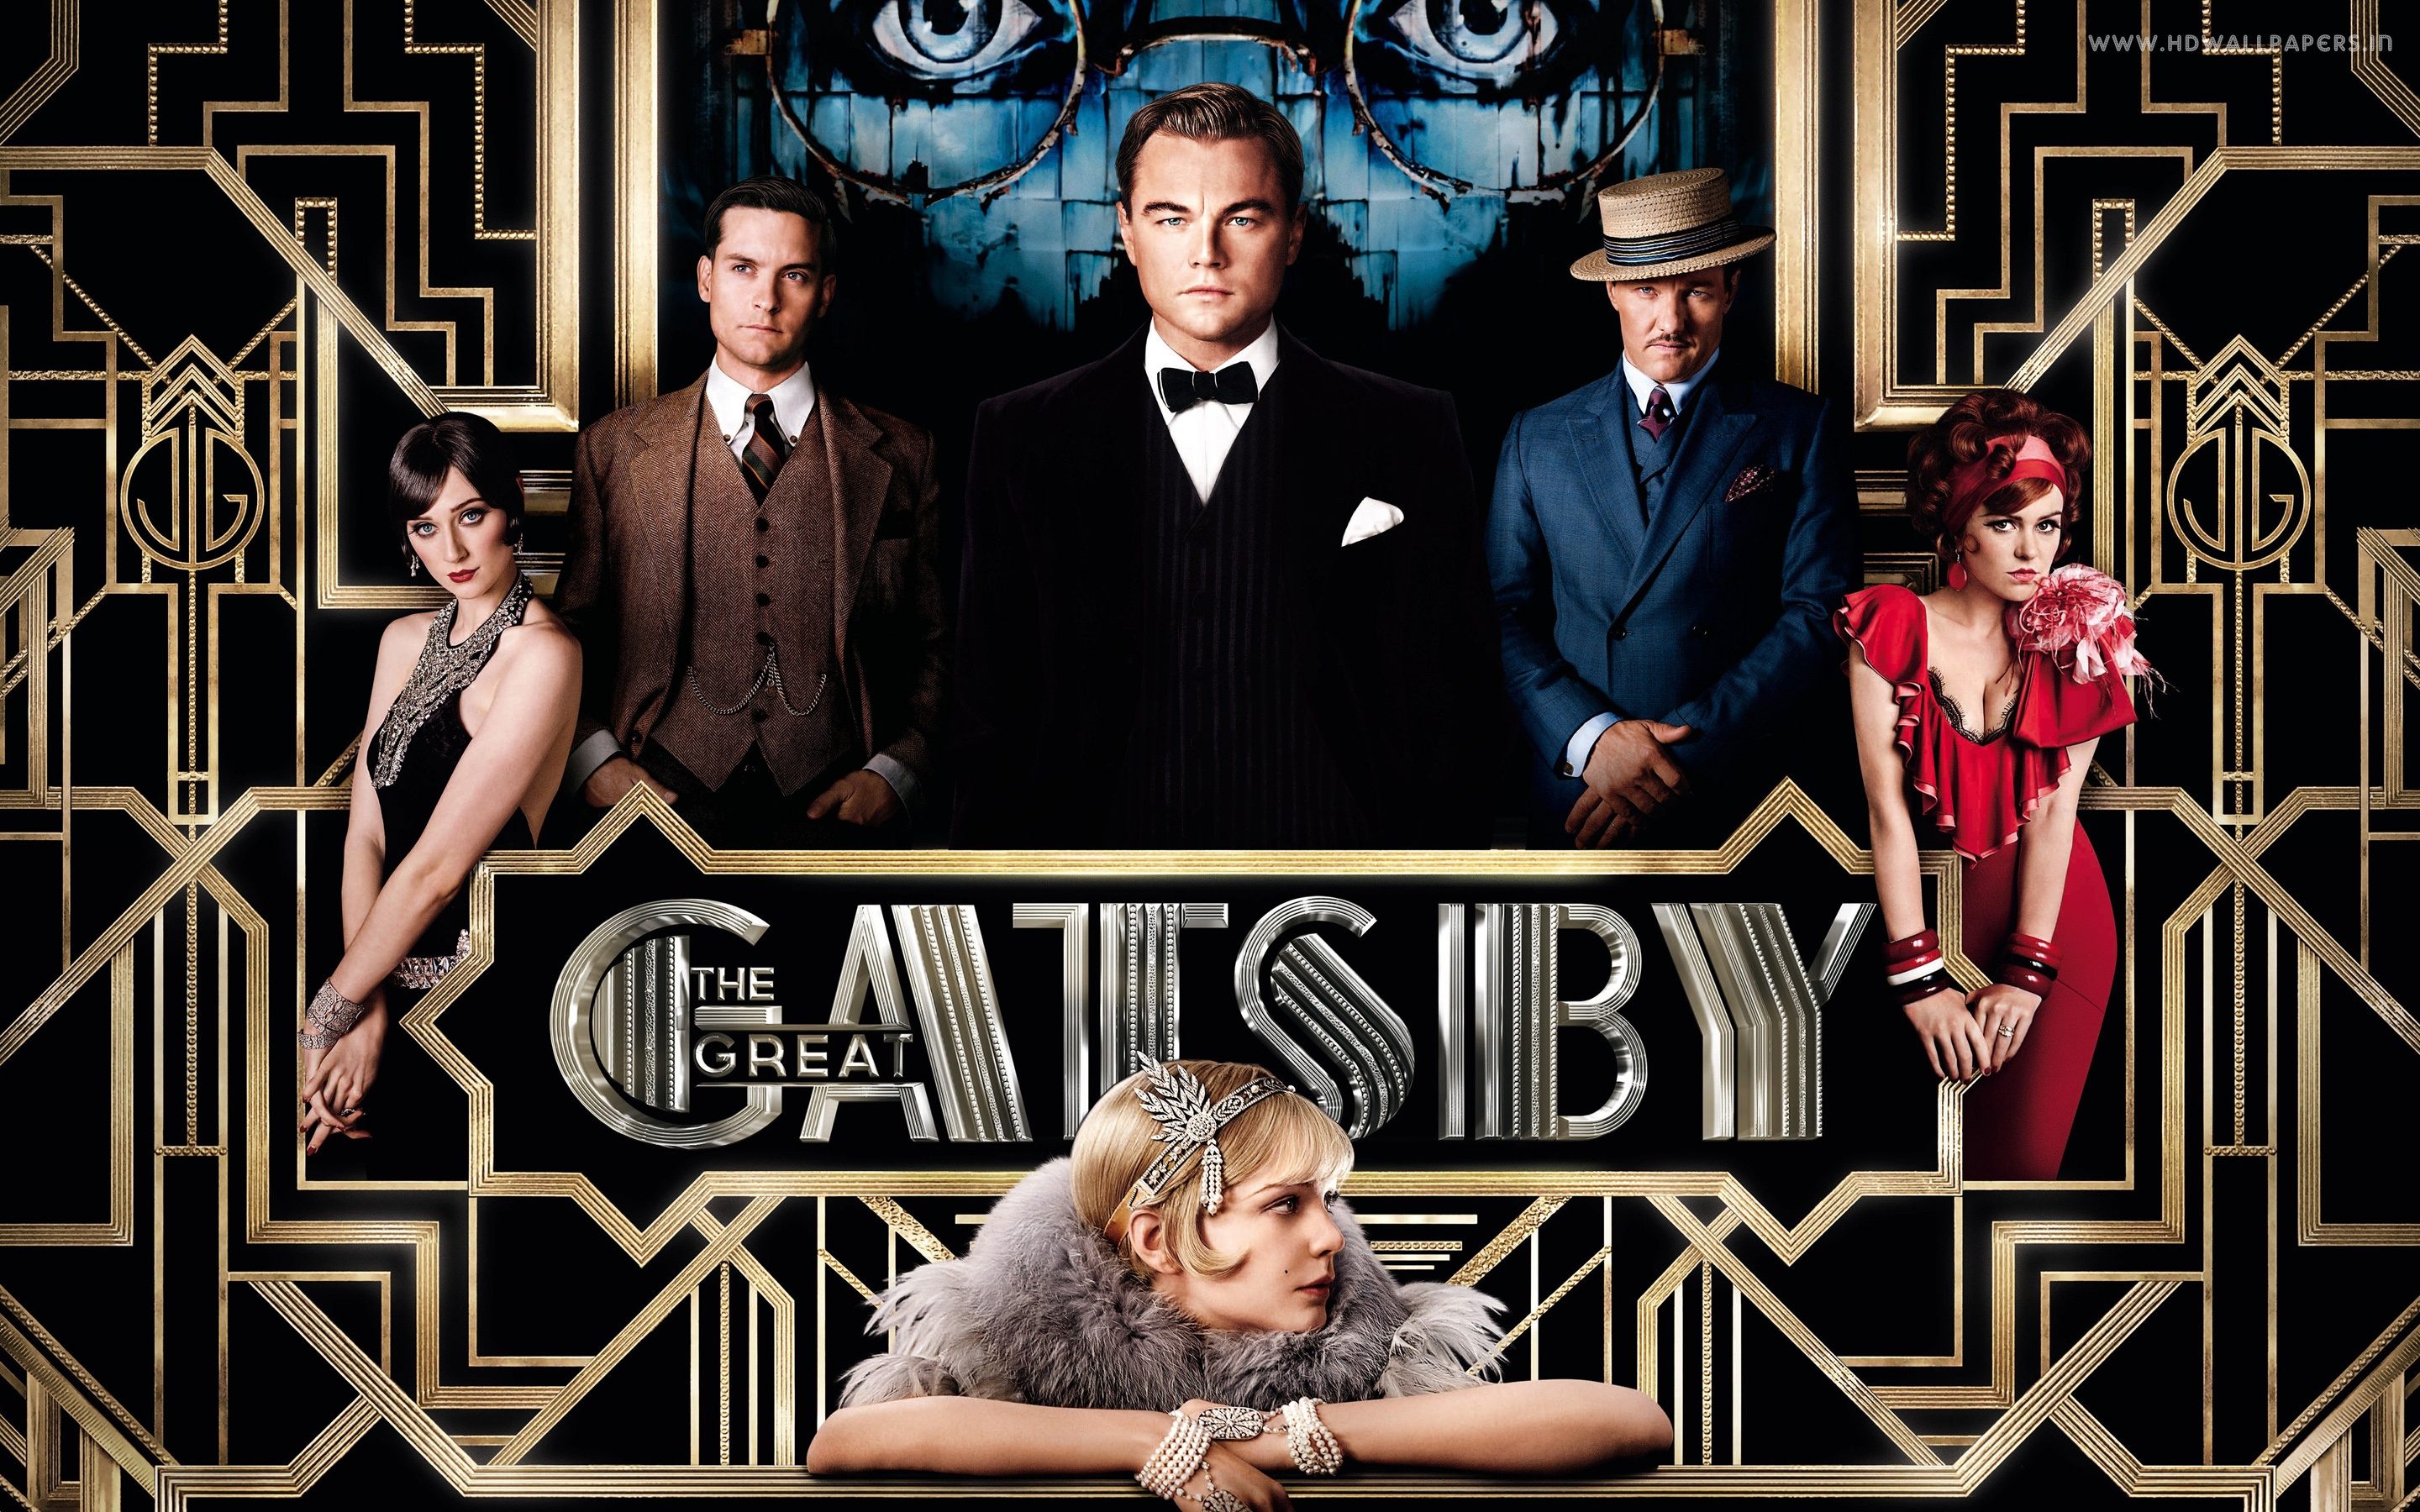 a literary critique of the wealthy lifestyles of the chatacters in the great gatsby Literary context of the great gatsby critical approaches to the great gatsby marxist interpretations nick is one of the less wealthy characters.